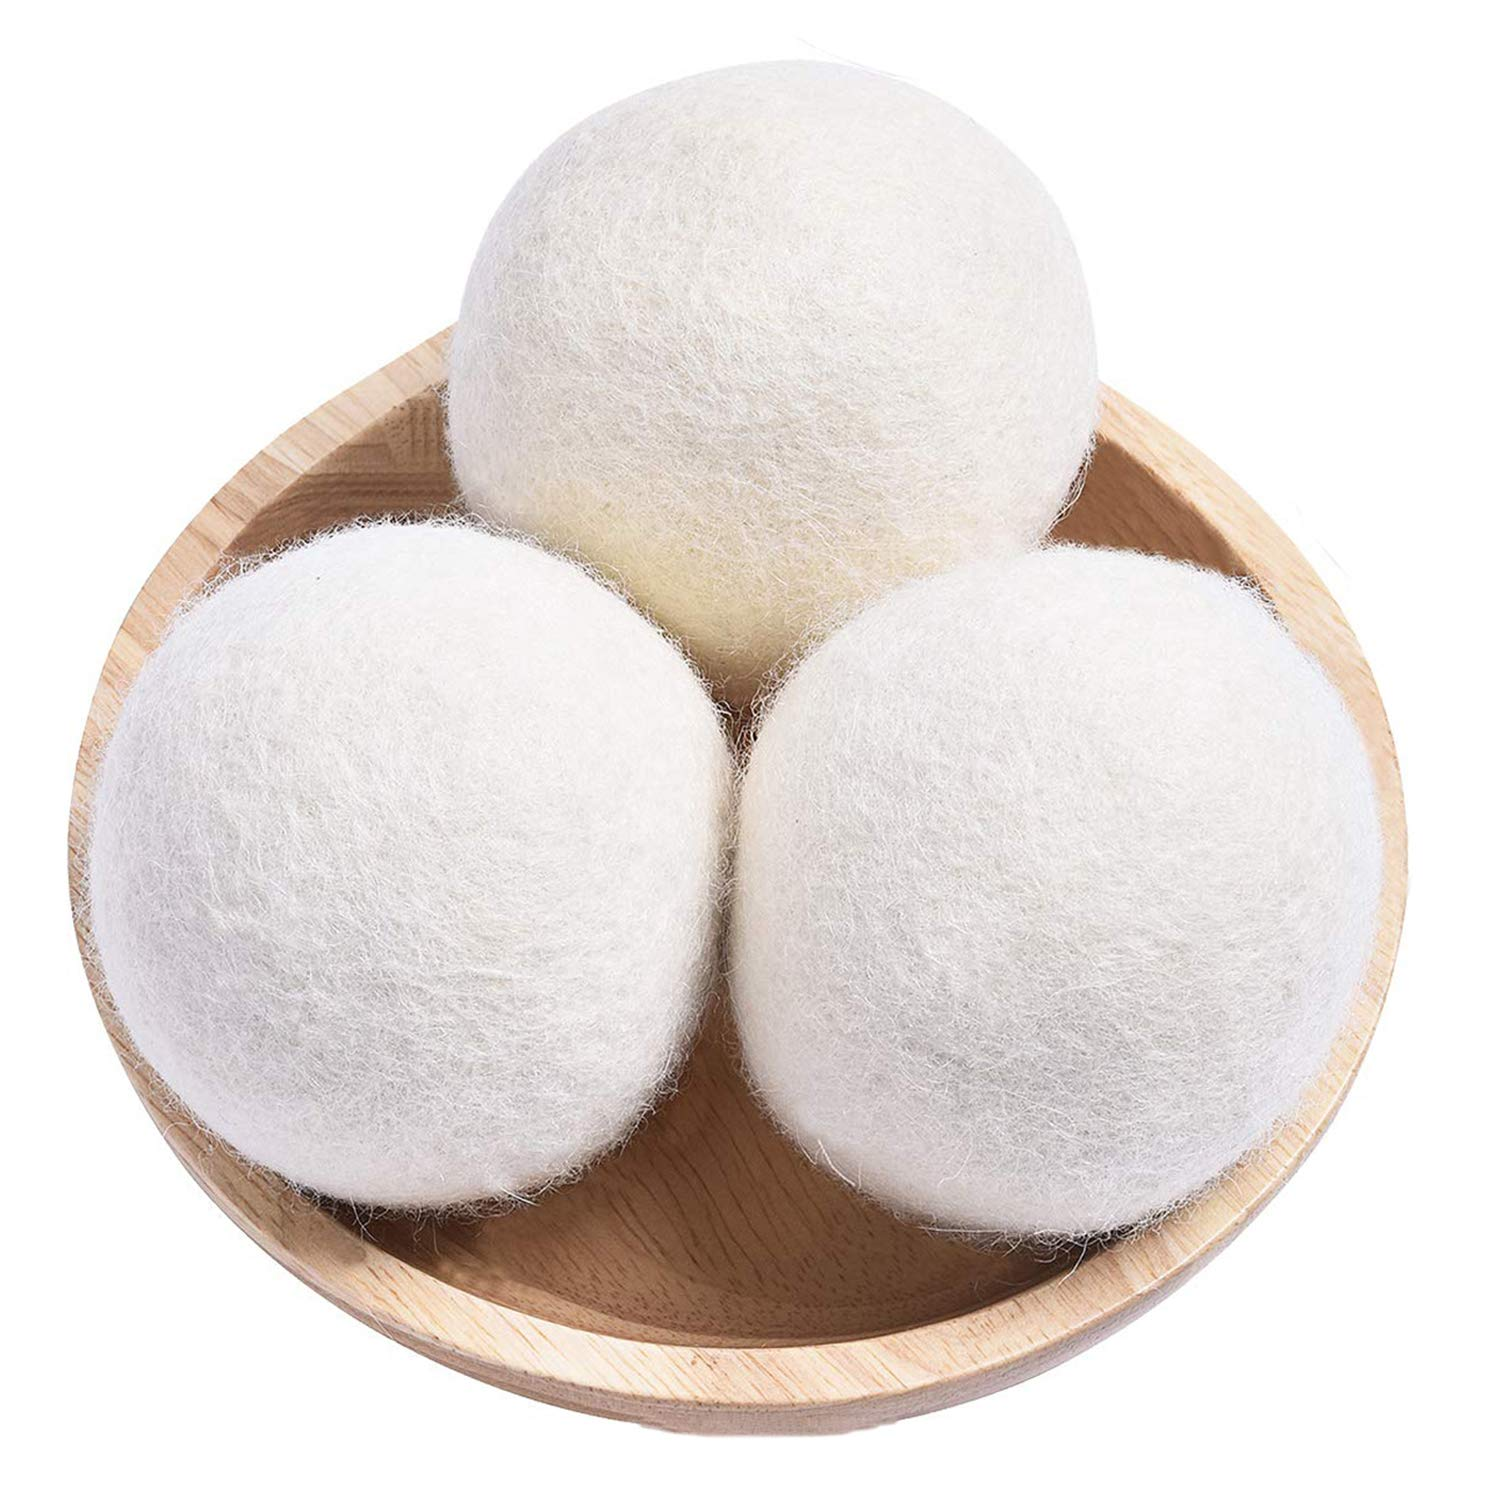 Organic Wool Dryer Balls XL,Handmade Laundry Dryer Balls Eco Reusable Natural Fabric Softener, Dryer Sheets Alternative,100% New Zealand Wool Extra-Large Dryer Ball,Reduce Wrinkles & Saves Drying Time